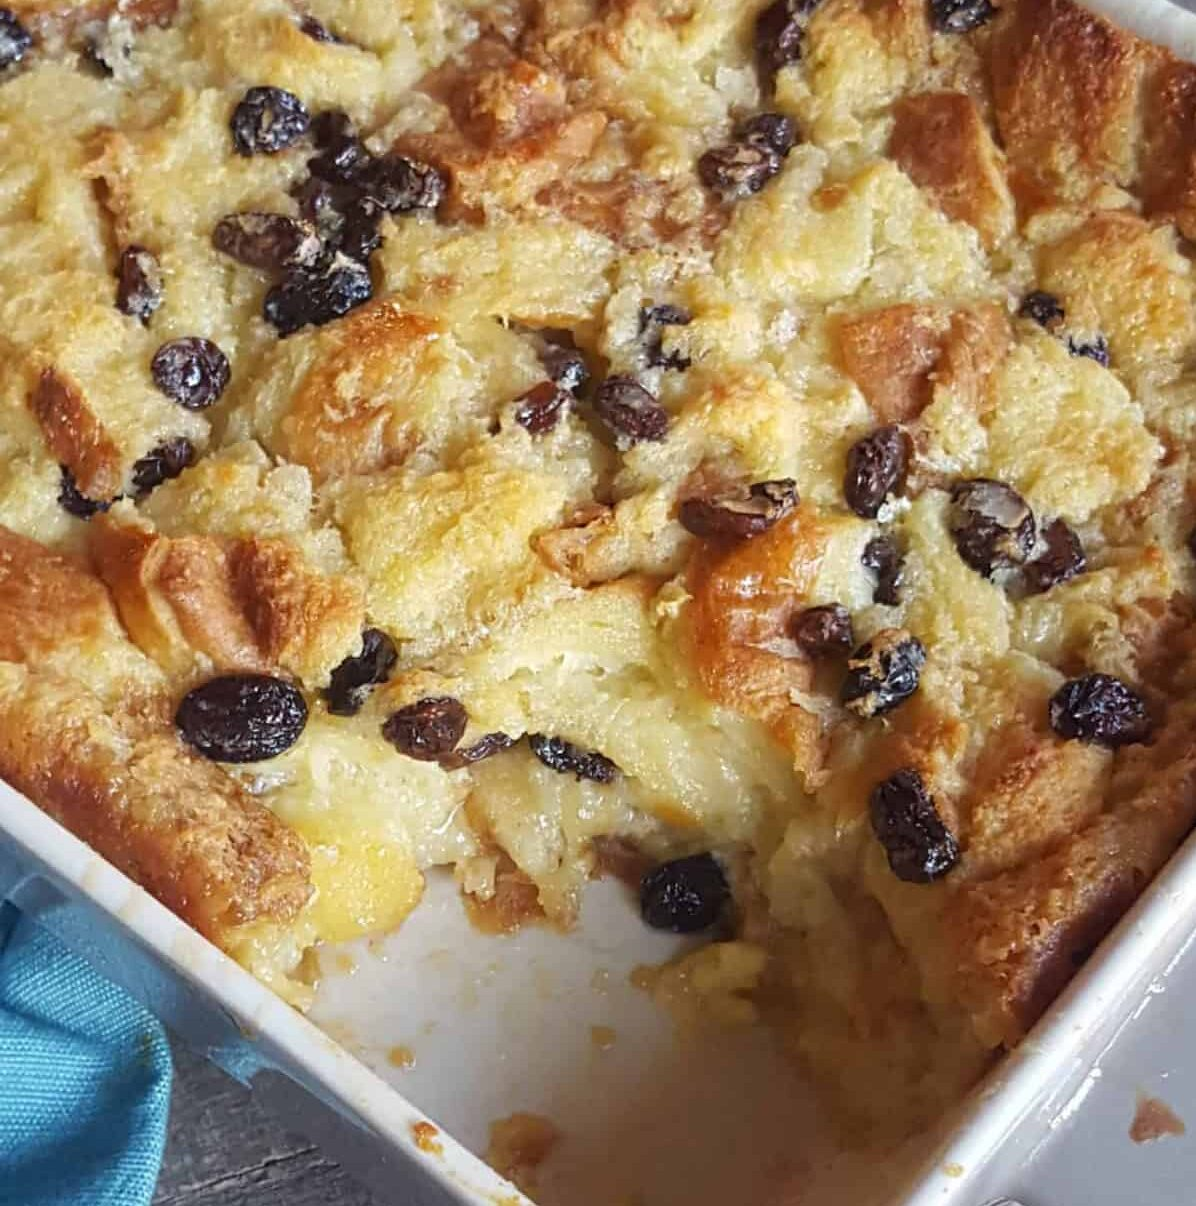 bread pudding with raisins scooped out of a white casserole dish with blue cloth